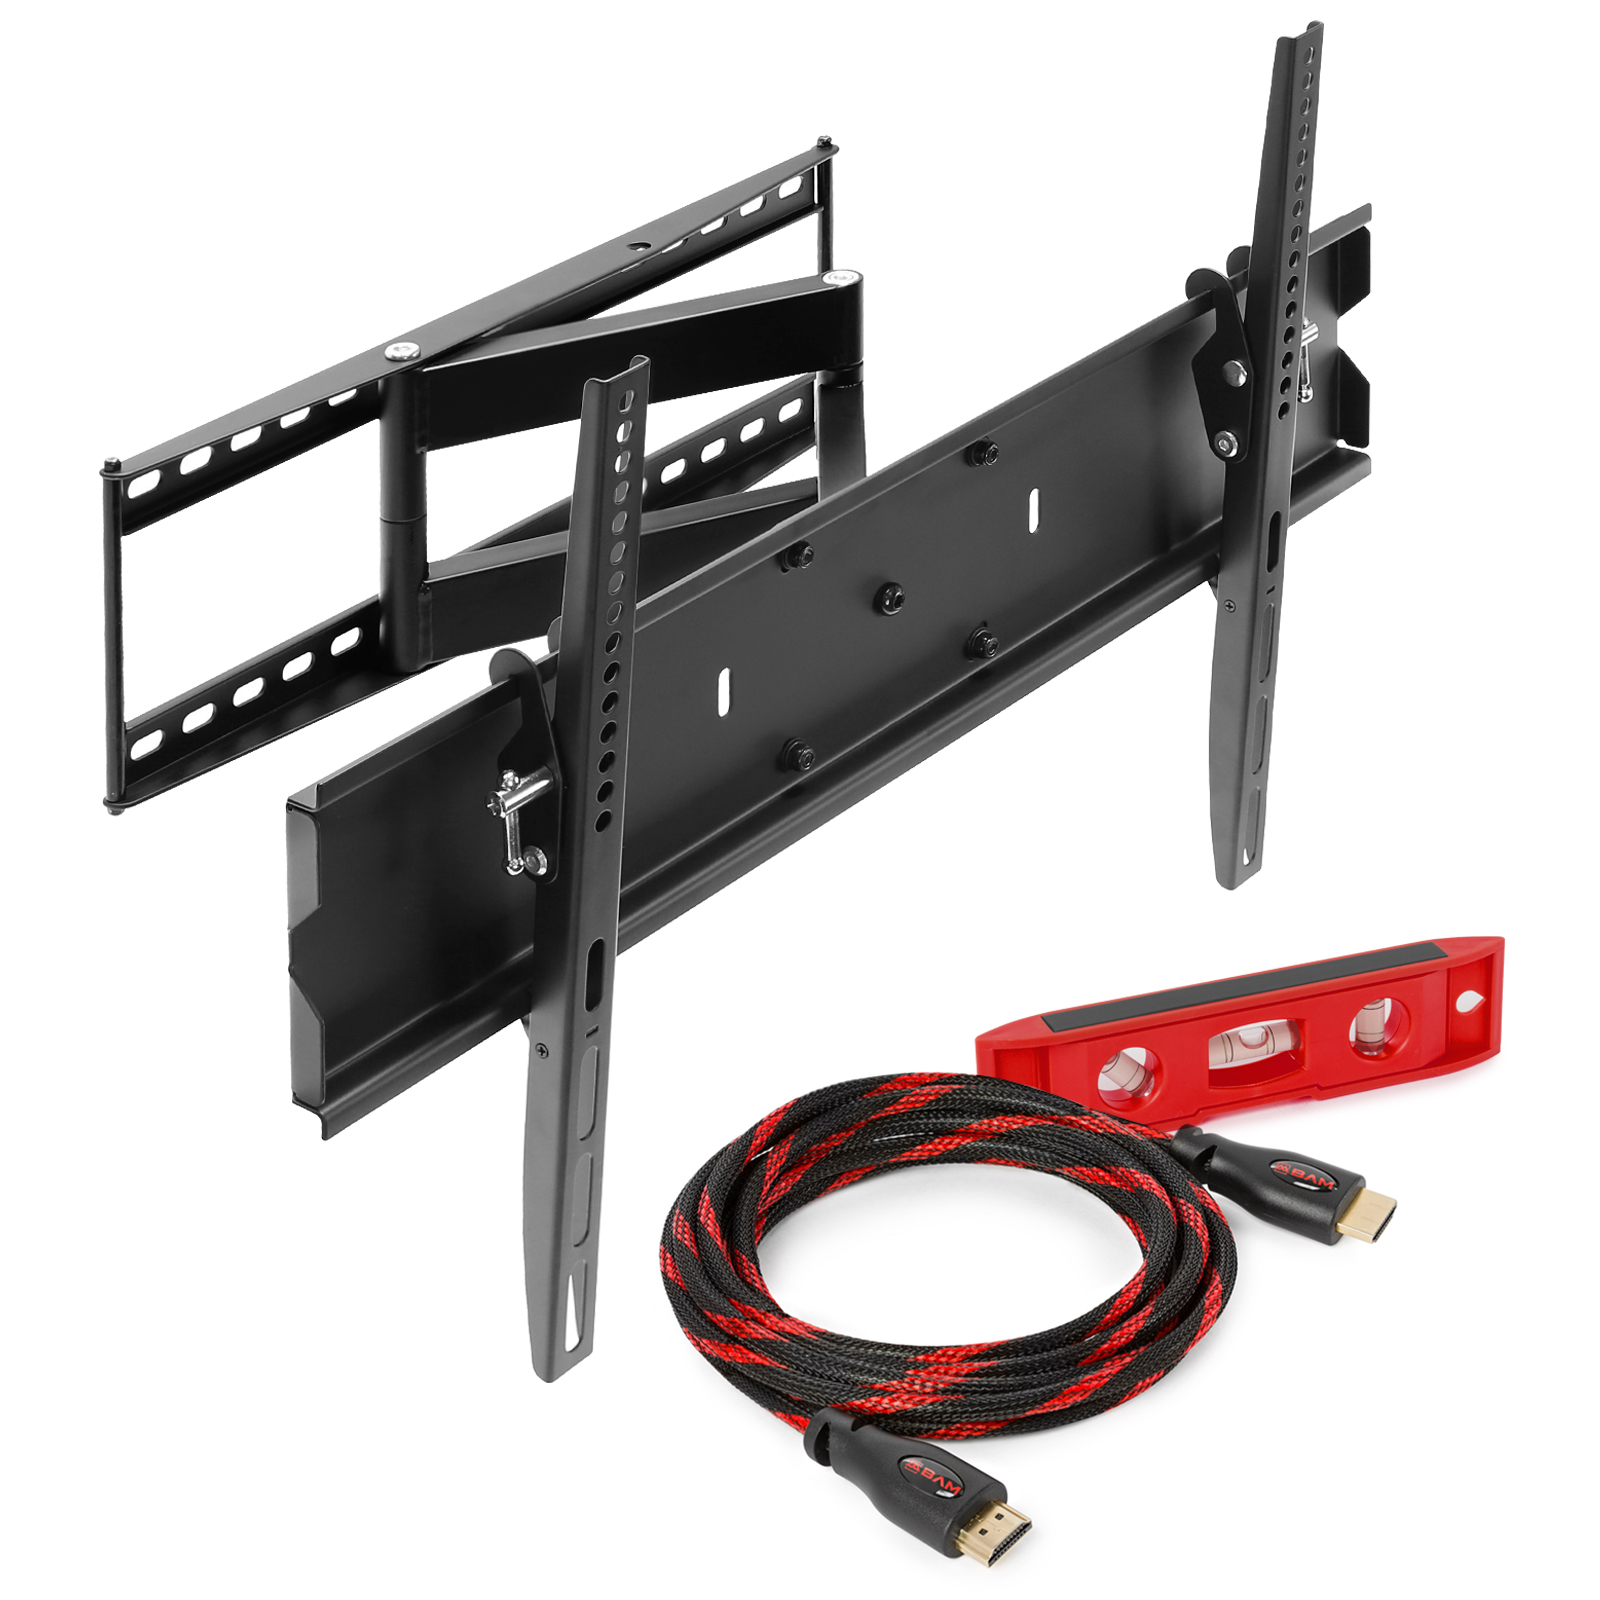 Mount Factory Articulating Tilting TV Wall Mount For 40 in. - 65 in. TVs